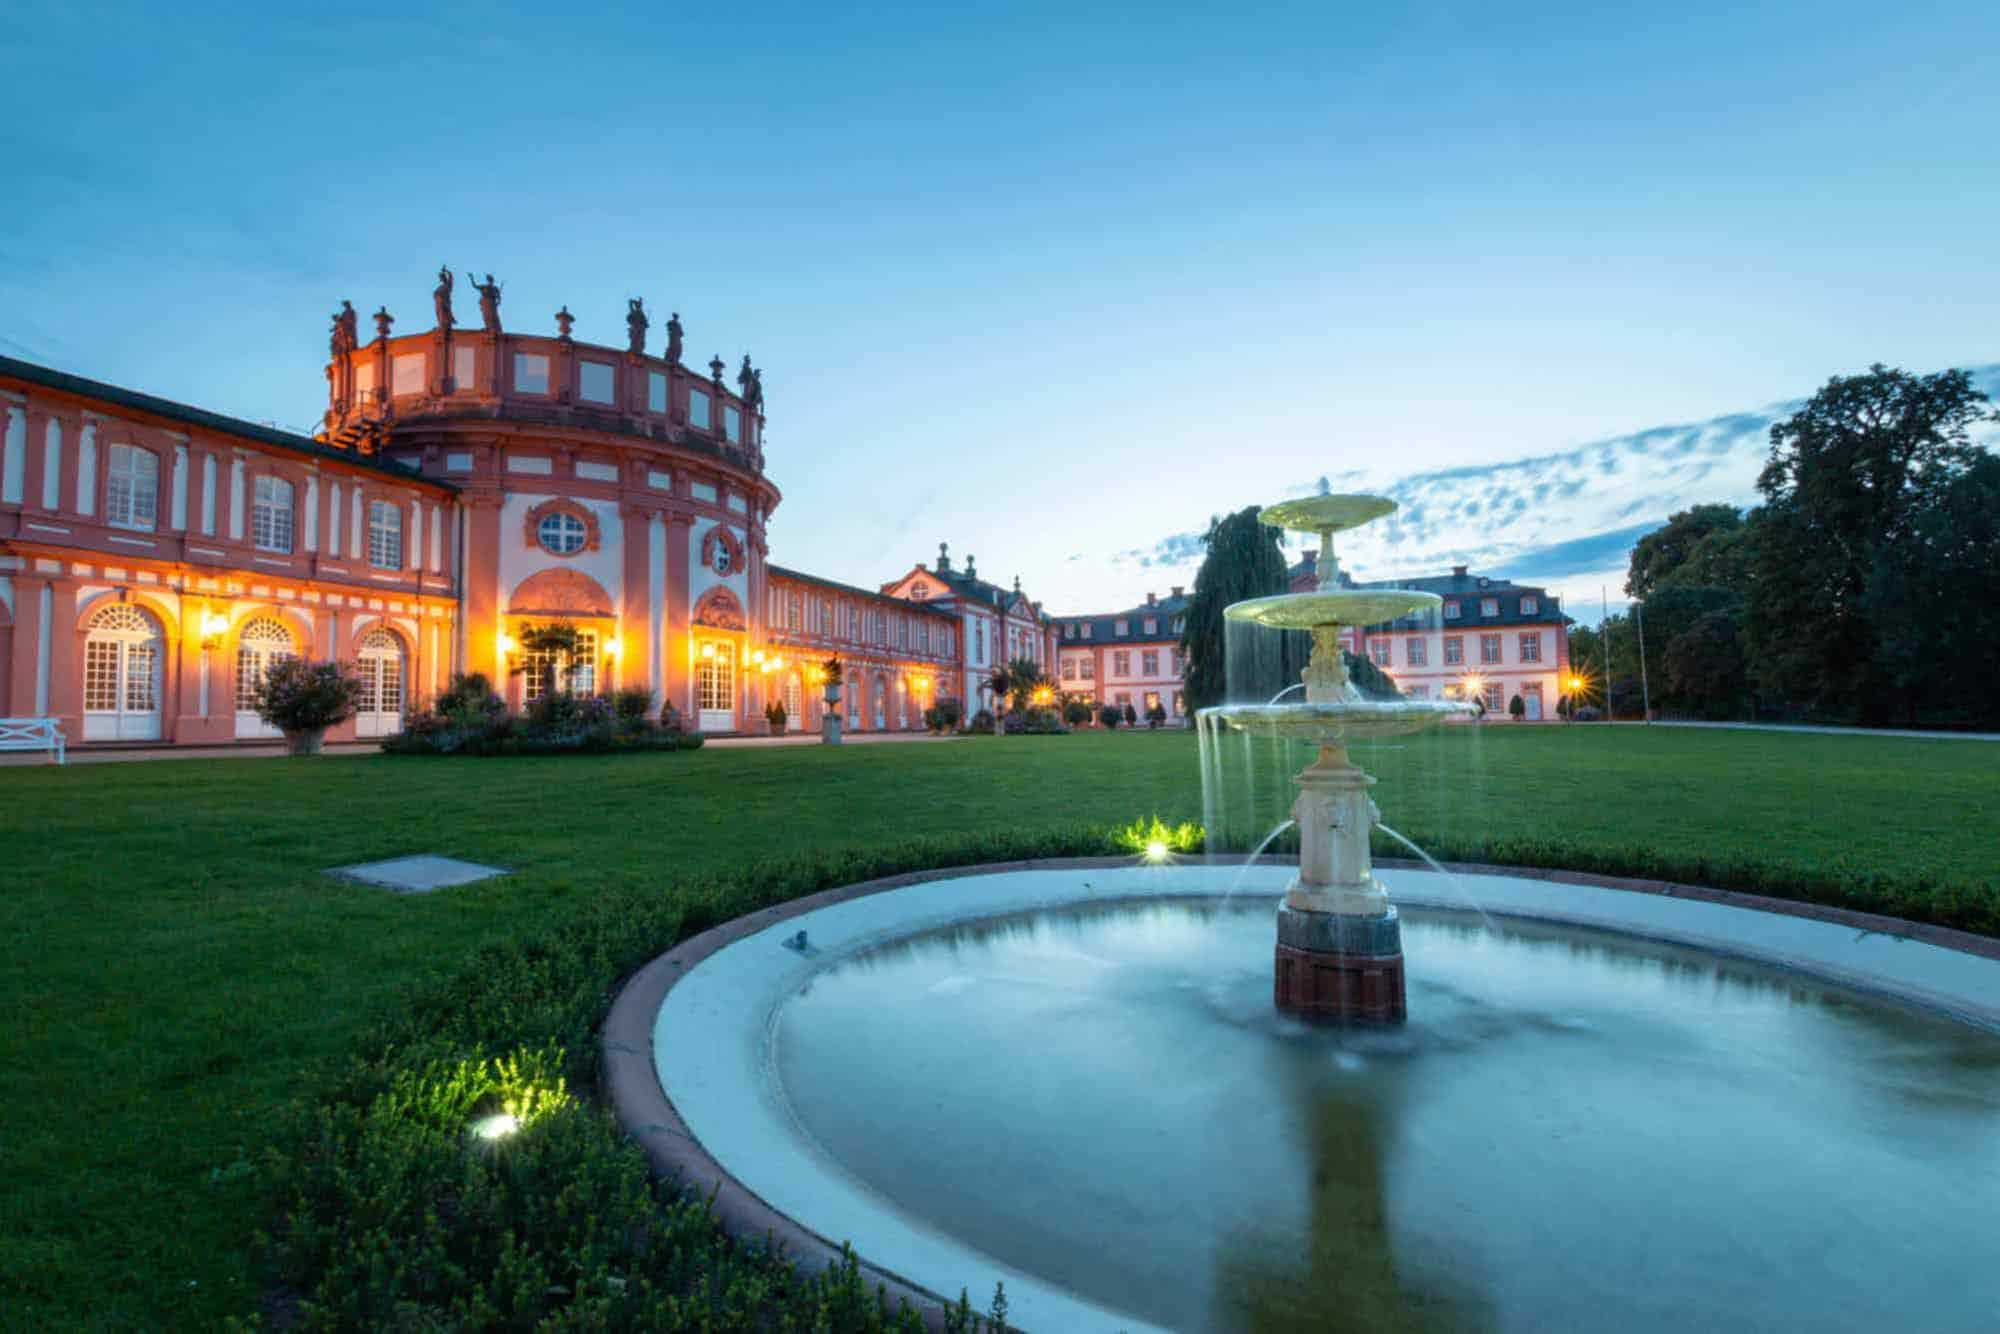 A fountain and a beautiful building are part of your South West Germany Road Trip